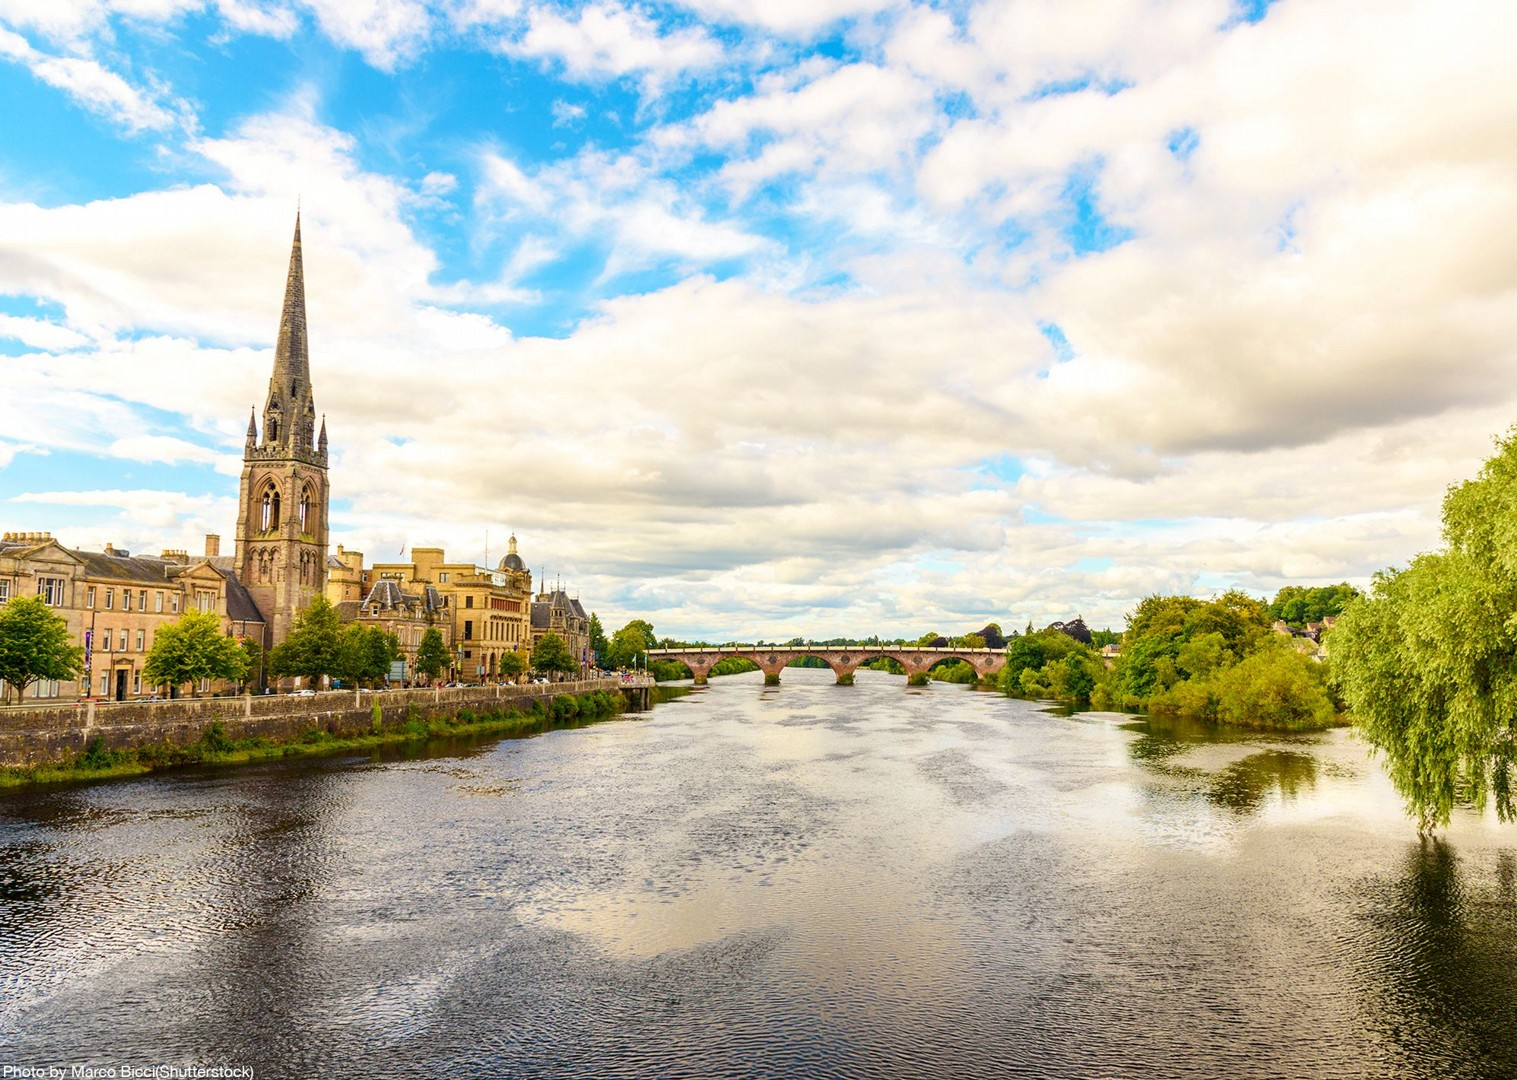 river-clyde-scotland-cycling-tour-uk-traditional-culture-town-villages.jpg - UK - Scotland - Lochs and Glens - Leisure Cycling